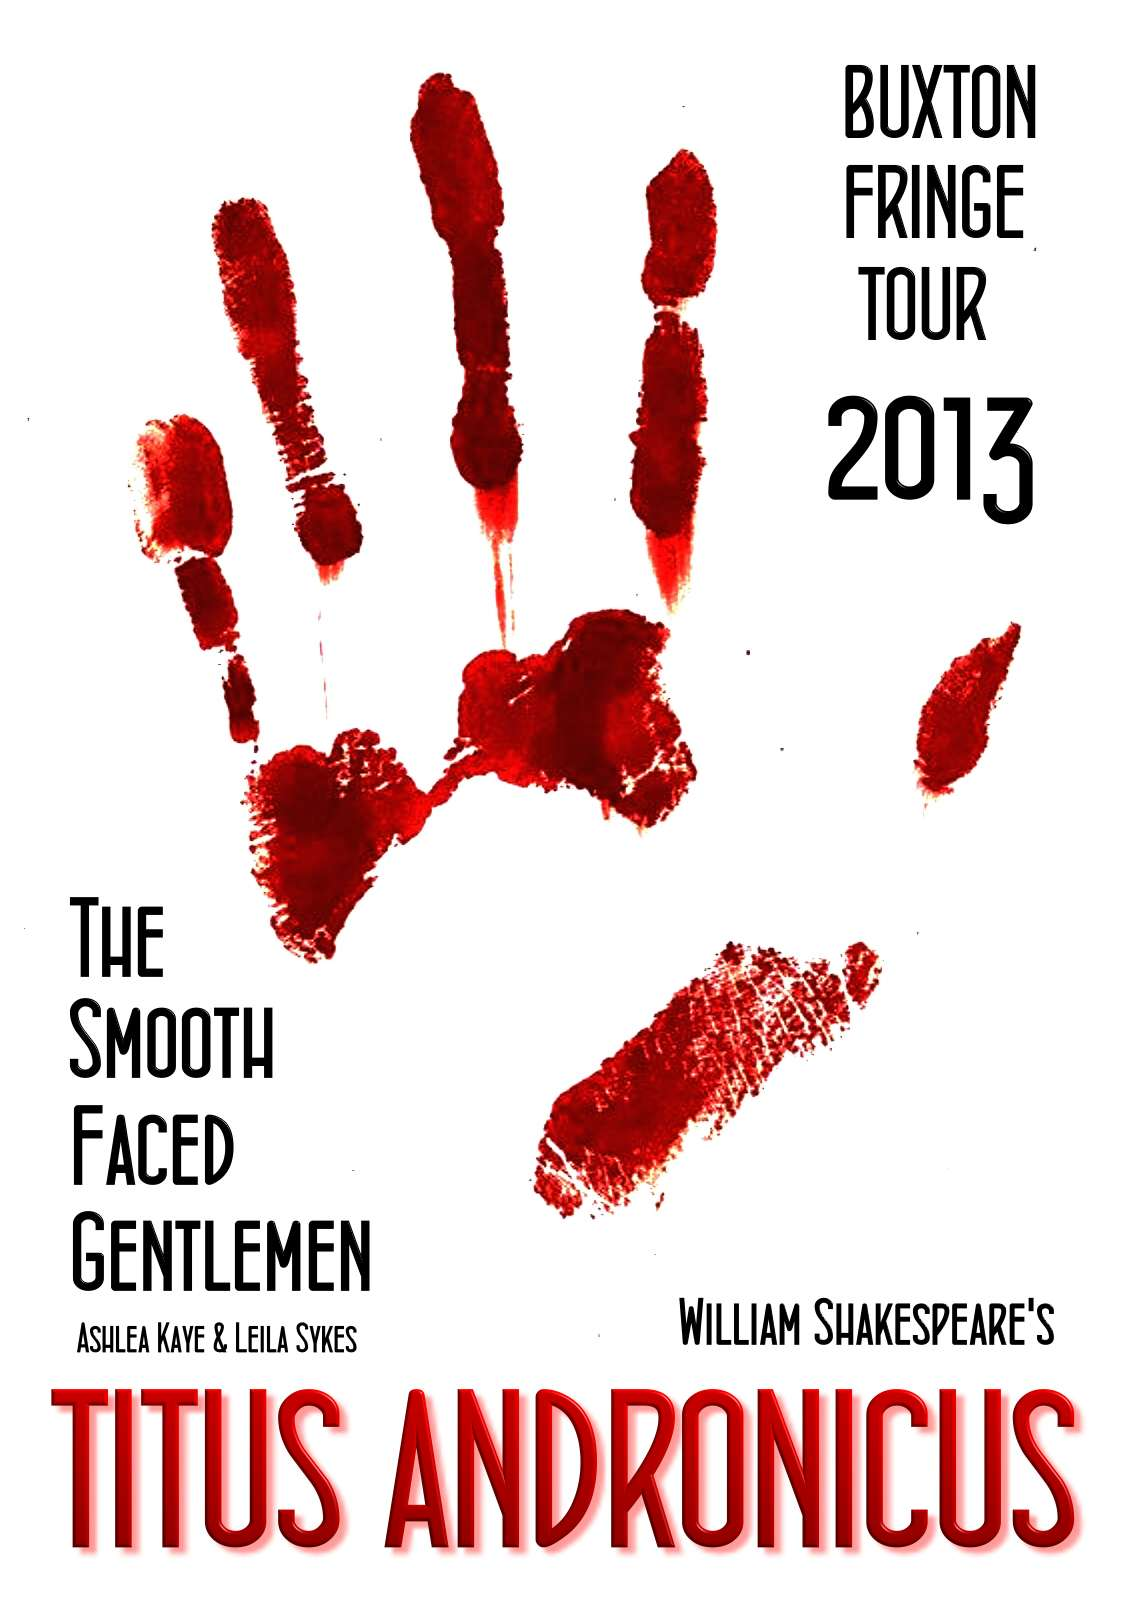 Titus Andronicus - Smooth Faced Gentlemen UK tour Buxton Fringe, Edinburgh Fringe theatre 2013